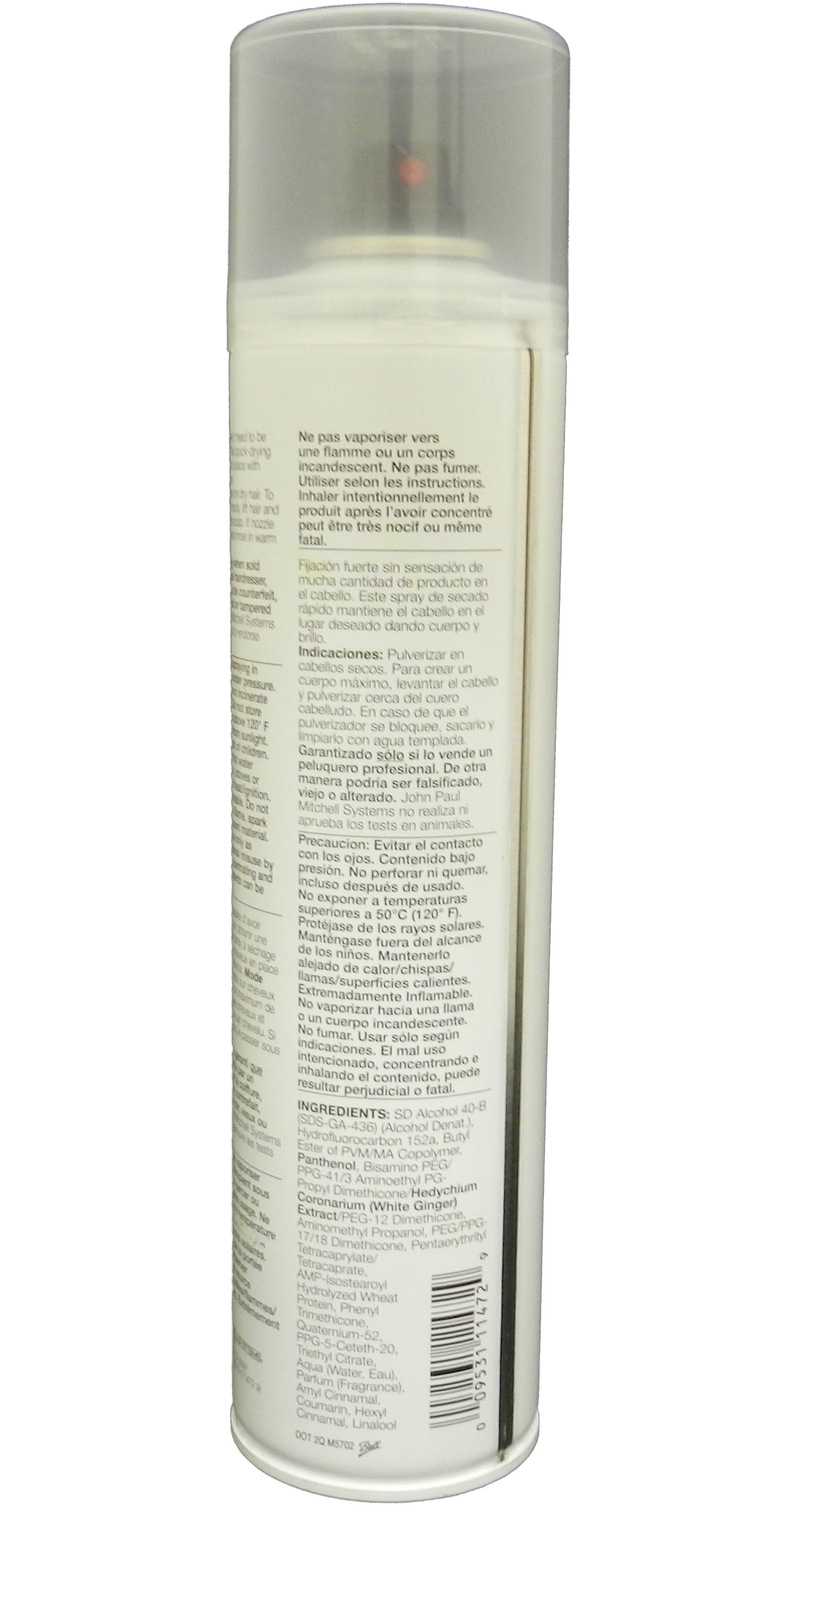 Paulmitchell supercleanextra 4729  1